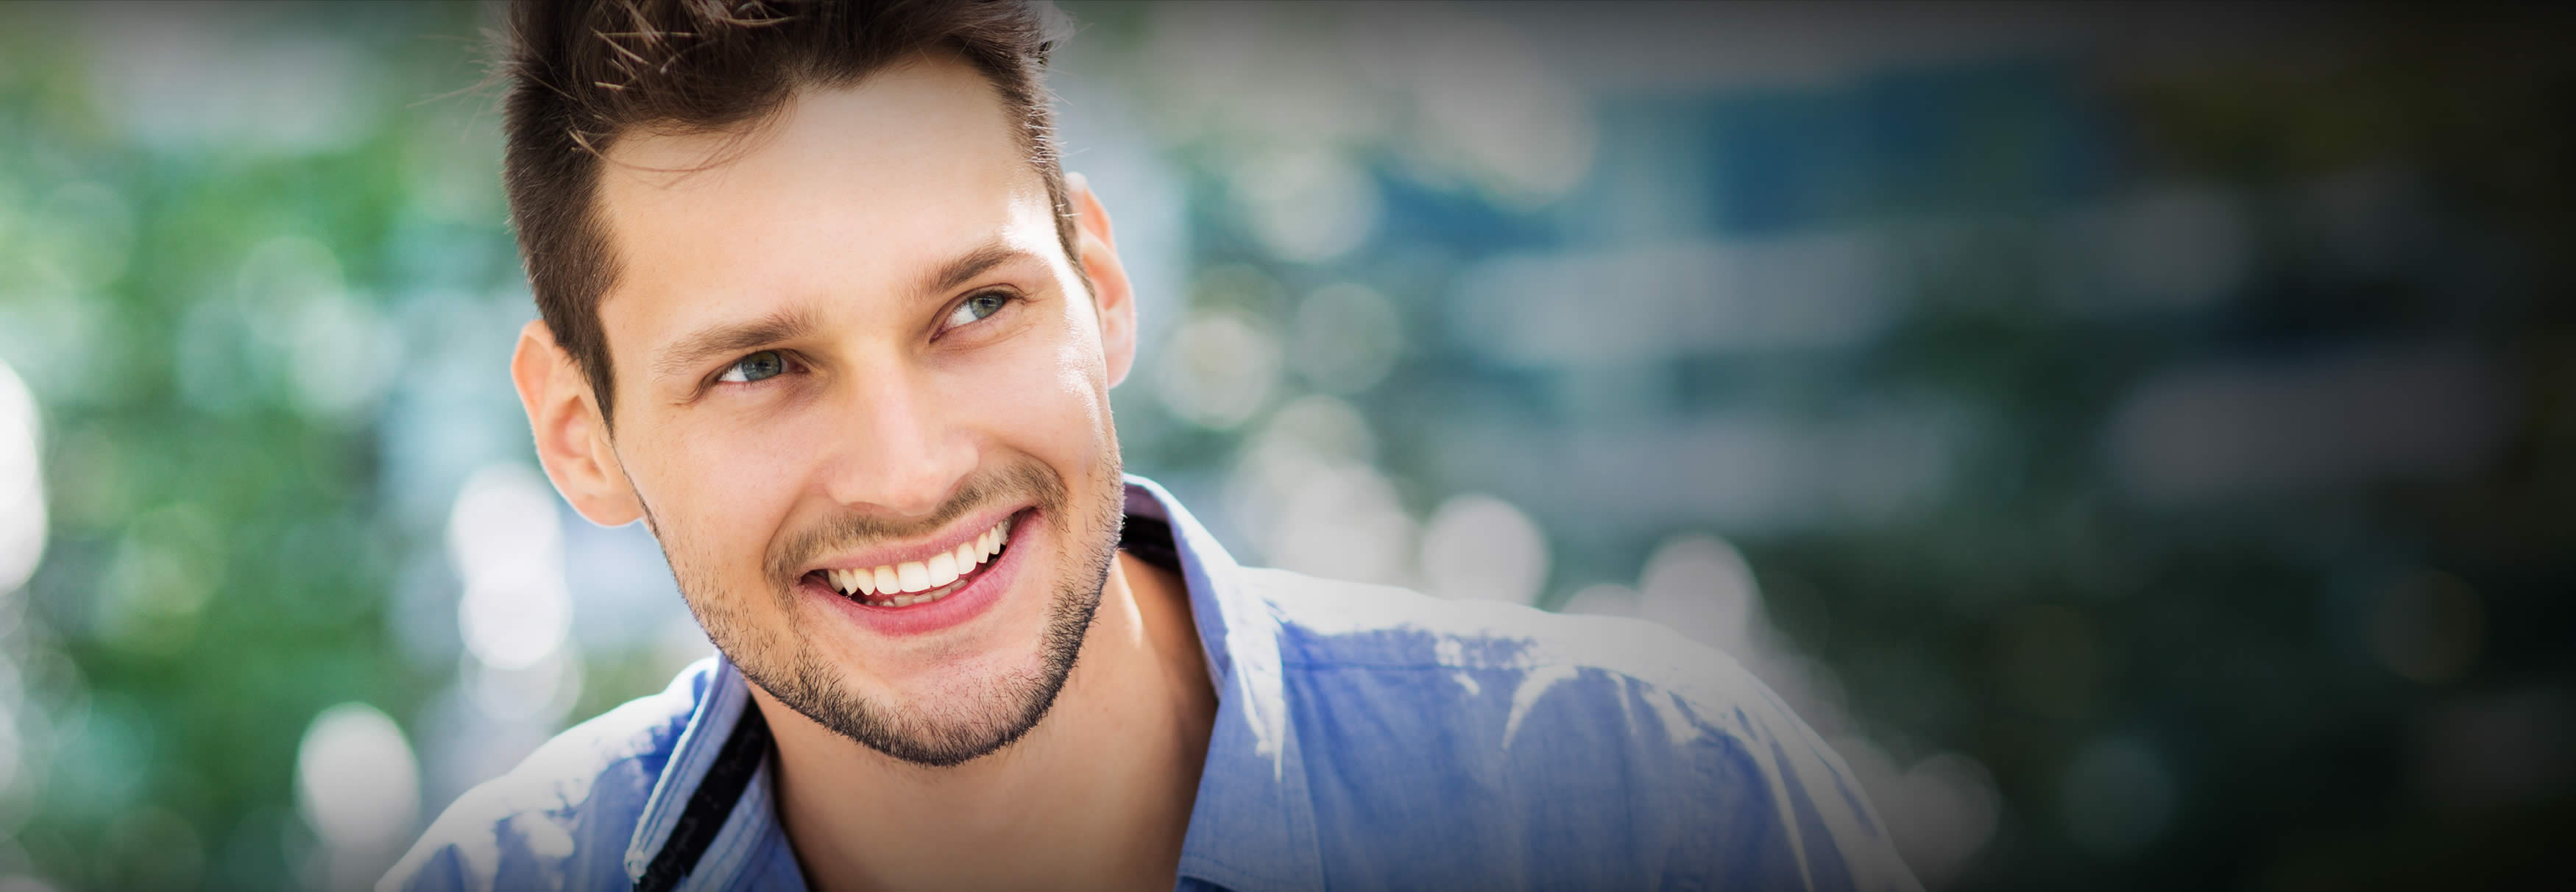 Straighten teeth with Invisalign in Ealing